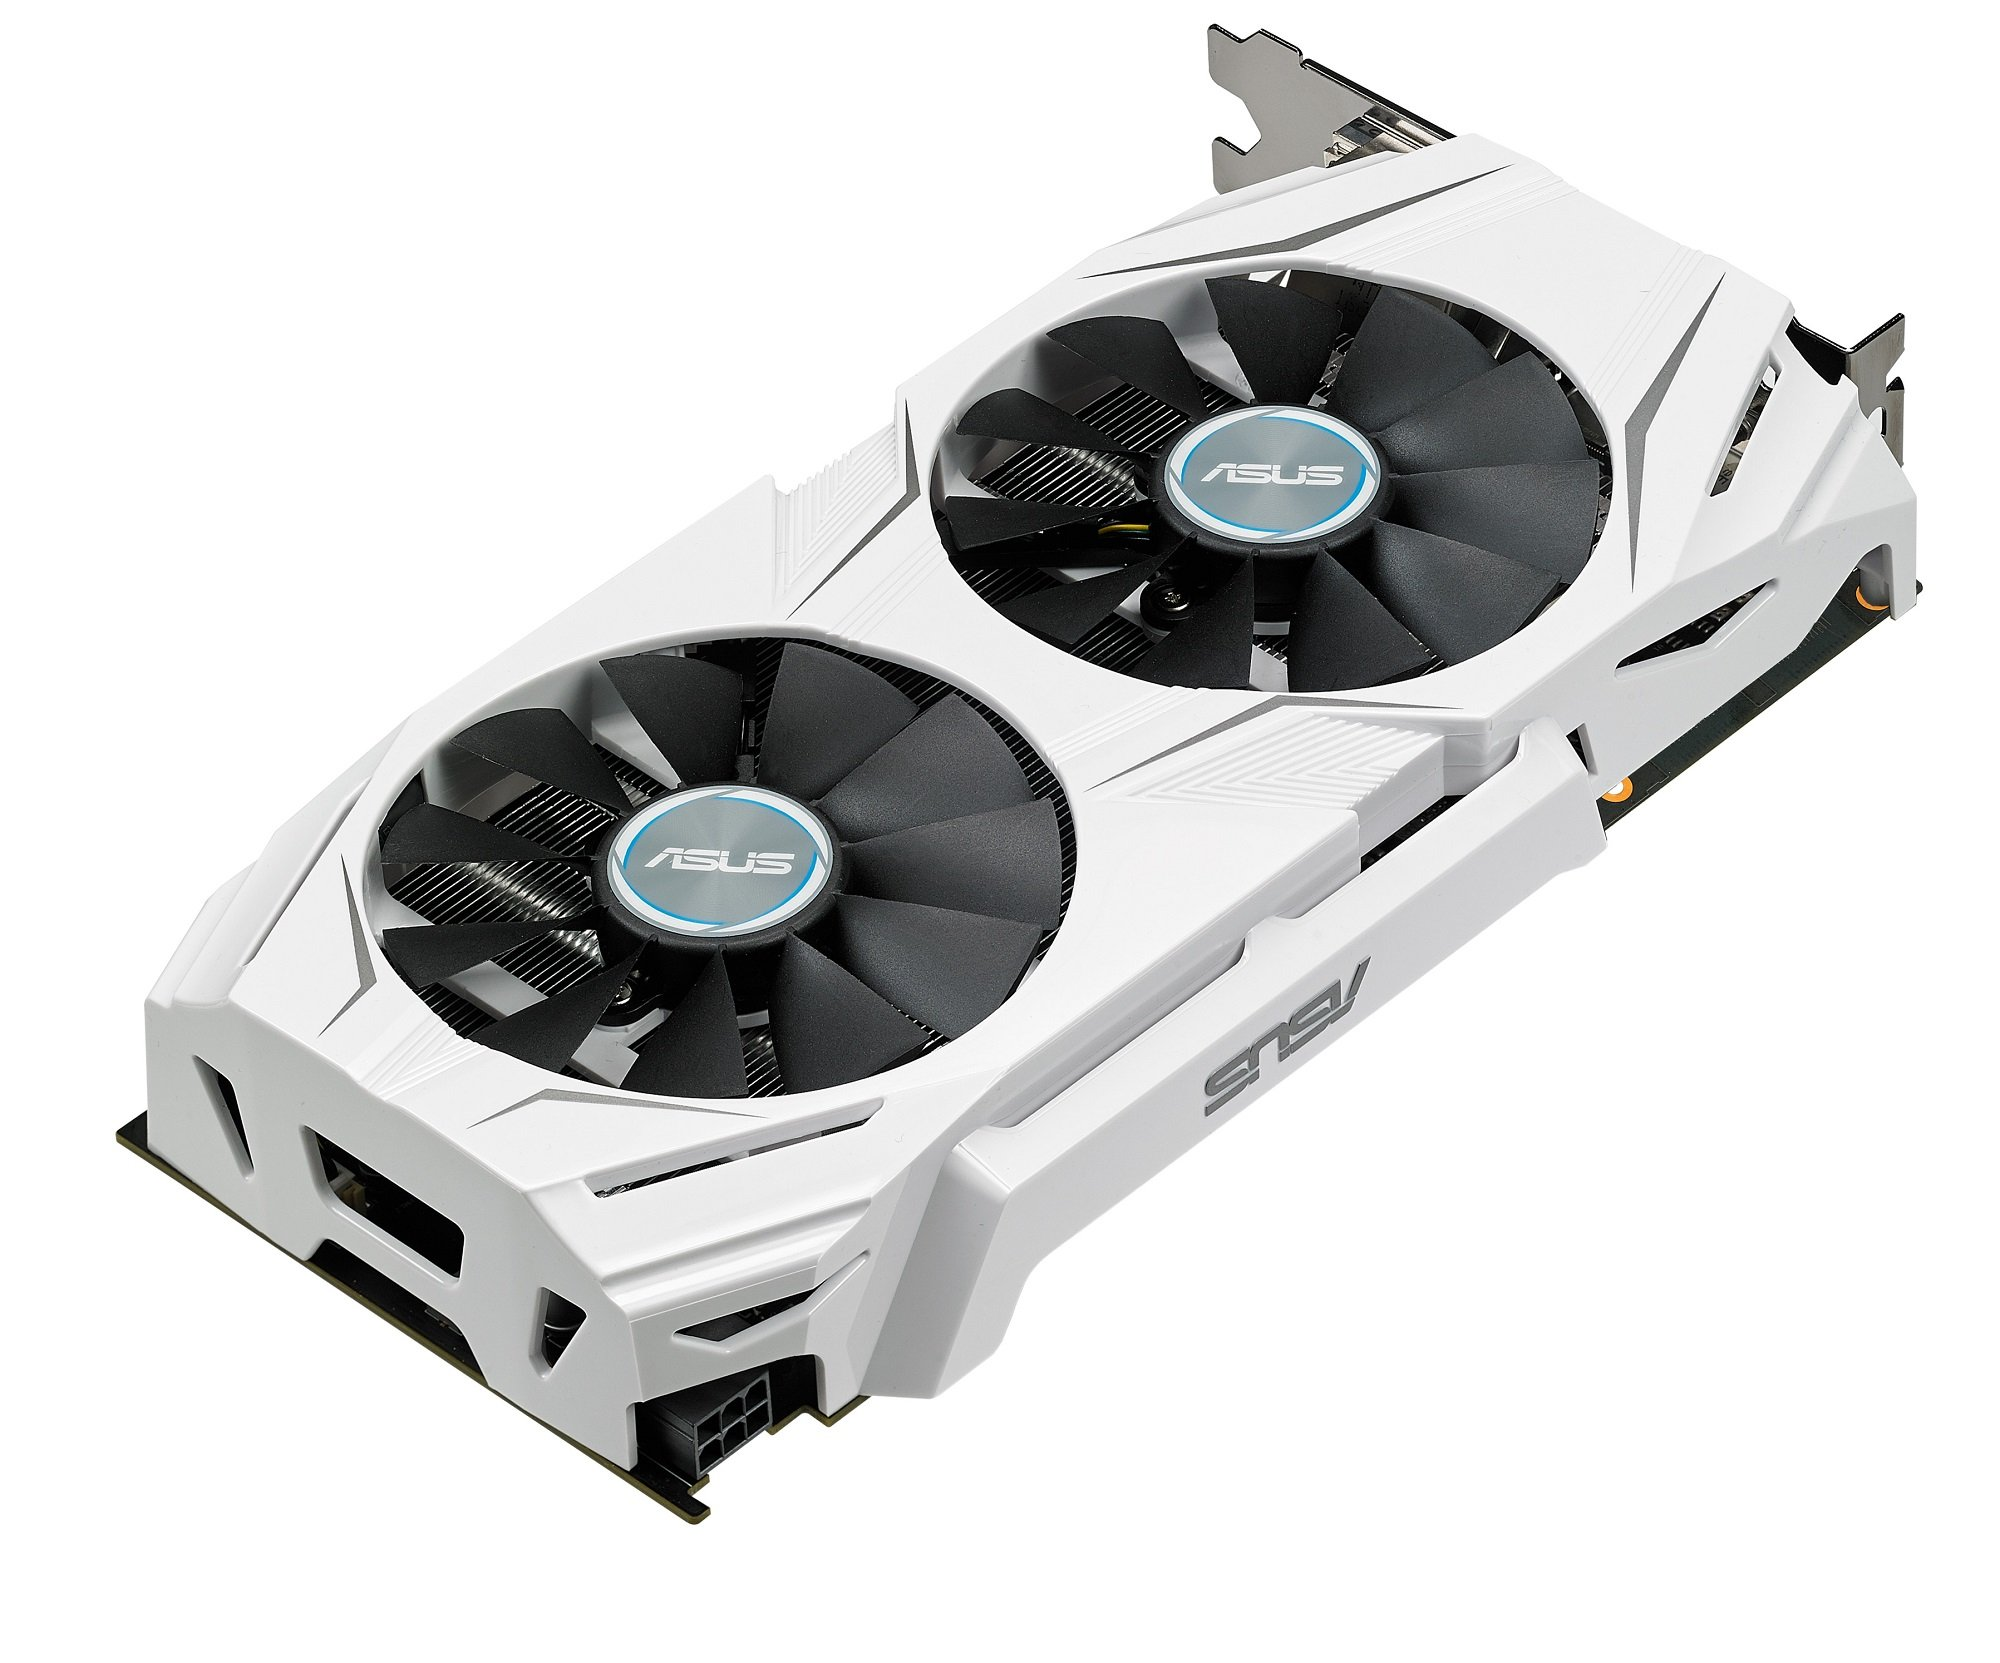 ASUS GeForce GTX 1060 6GB Dual-fan OC Edition VR Ready Dual HDMI DP 1.4 Gaming Graphics Card (DUAL-GTX1060-O6G) by Asus (Image #5)